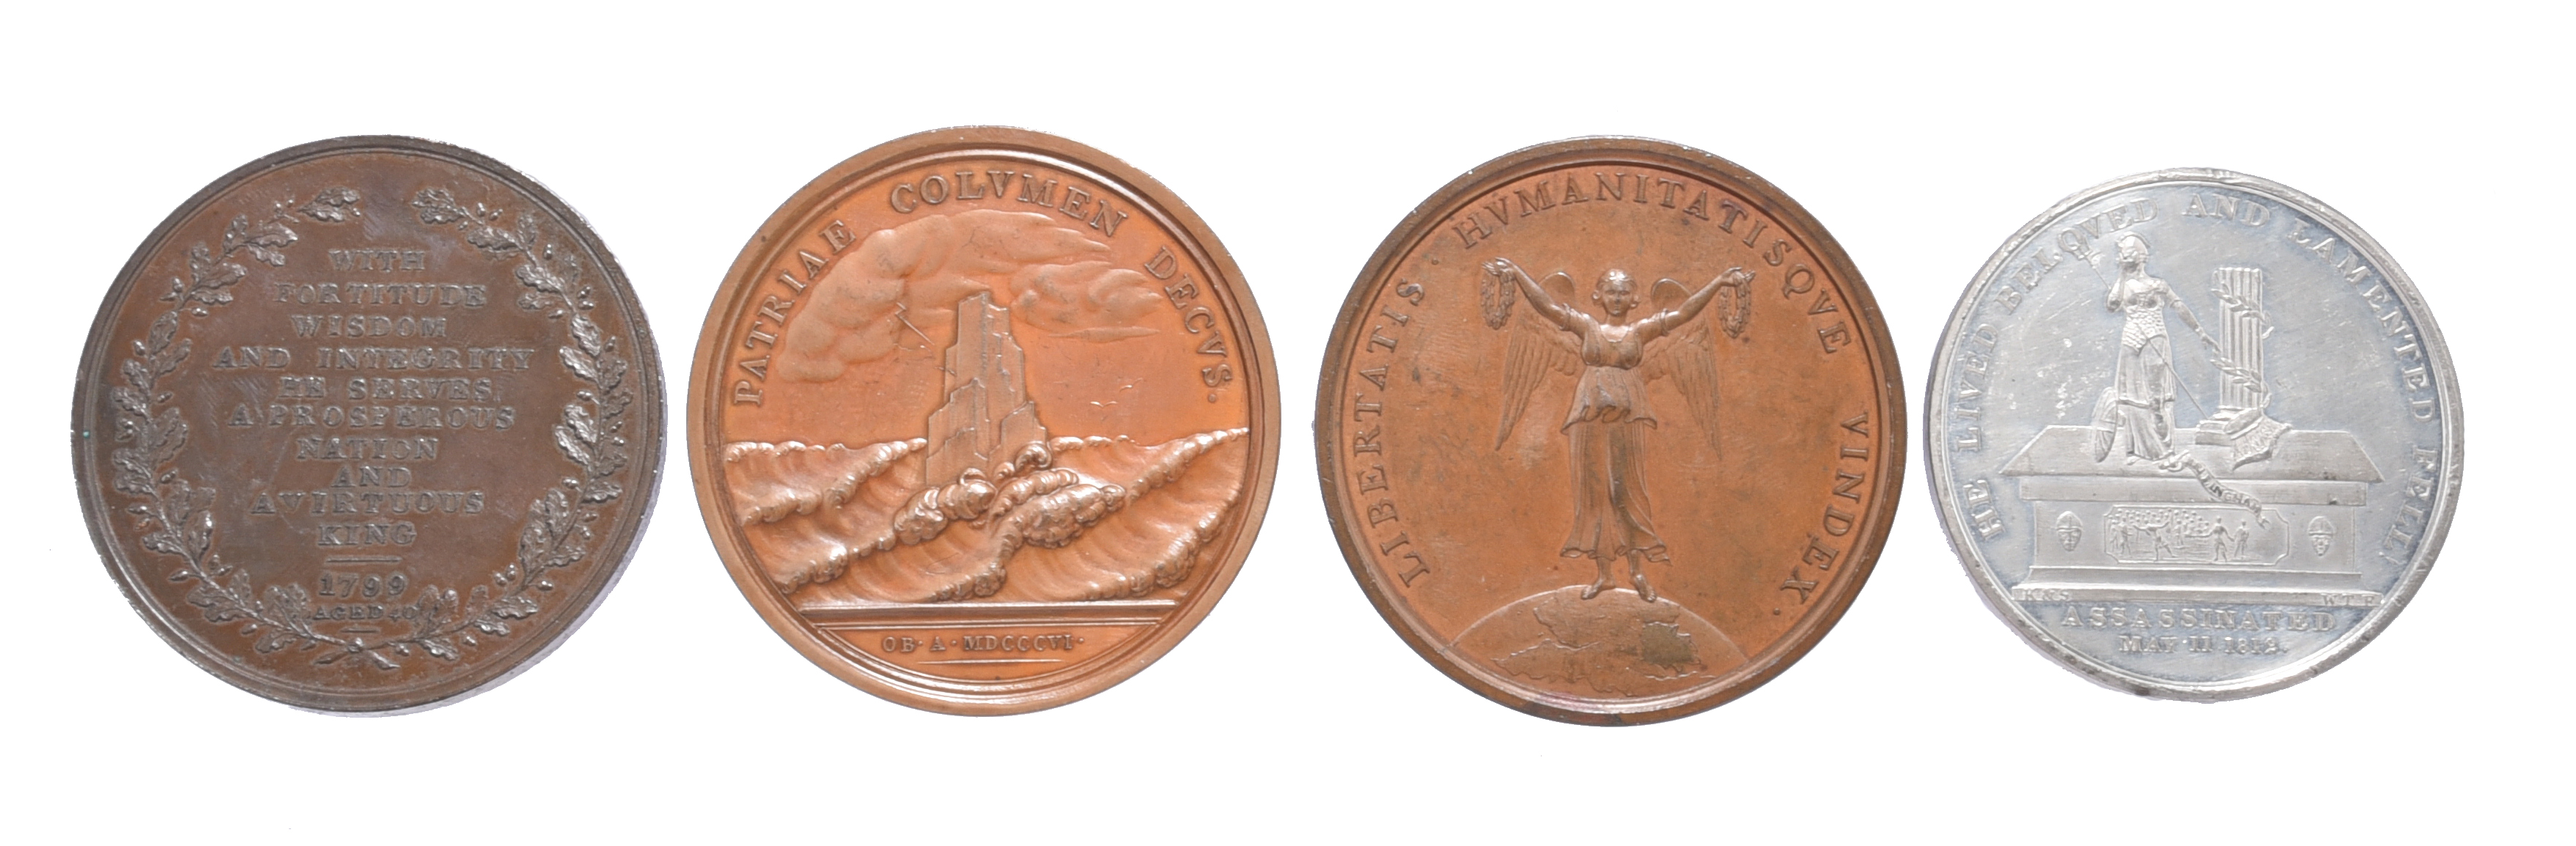 British politicians, four medals: William Pitt First Lord of the Treasury 1799, AE, 53mm, bust left, - Image 2 of 2